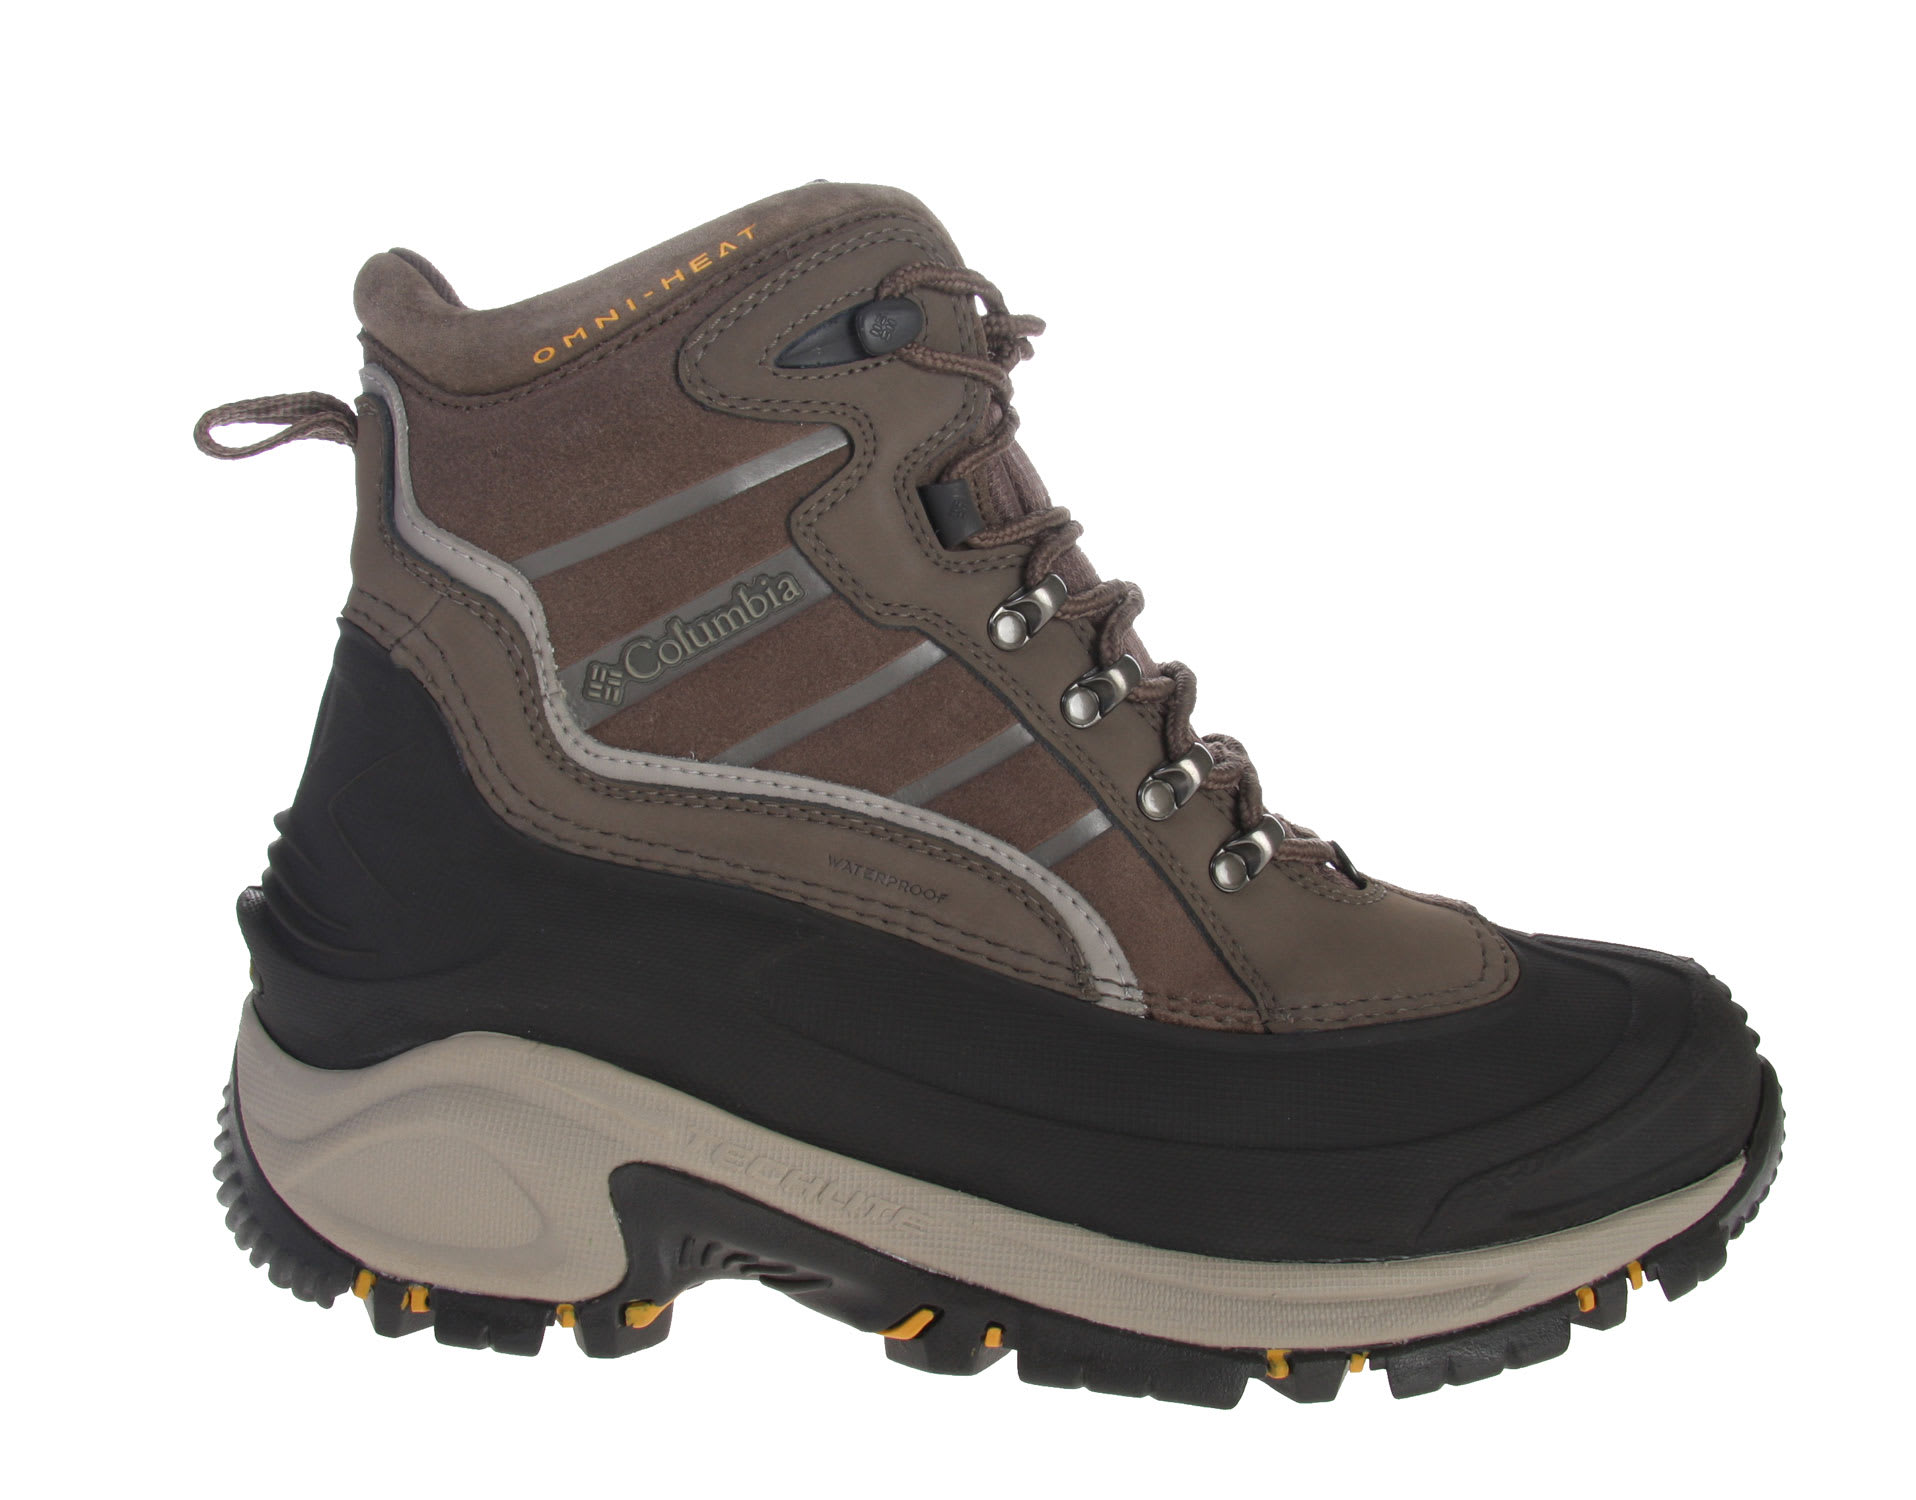 Shop for Columbia Bugaboot Omni Boots Mud/Treasure - Men's